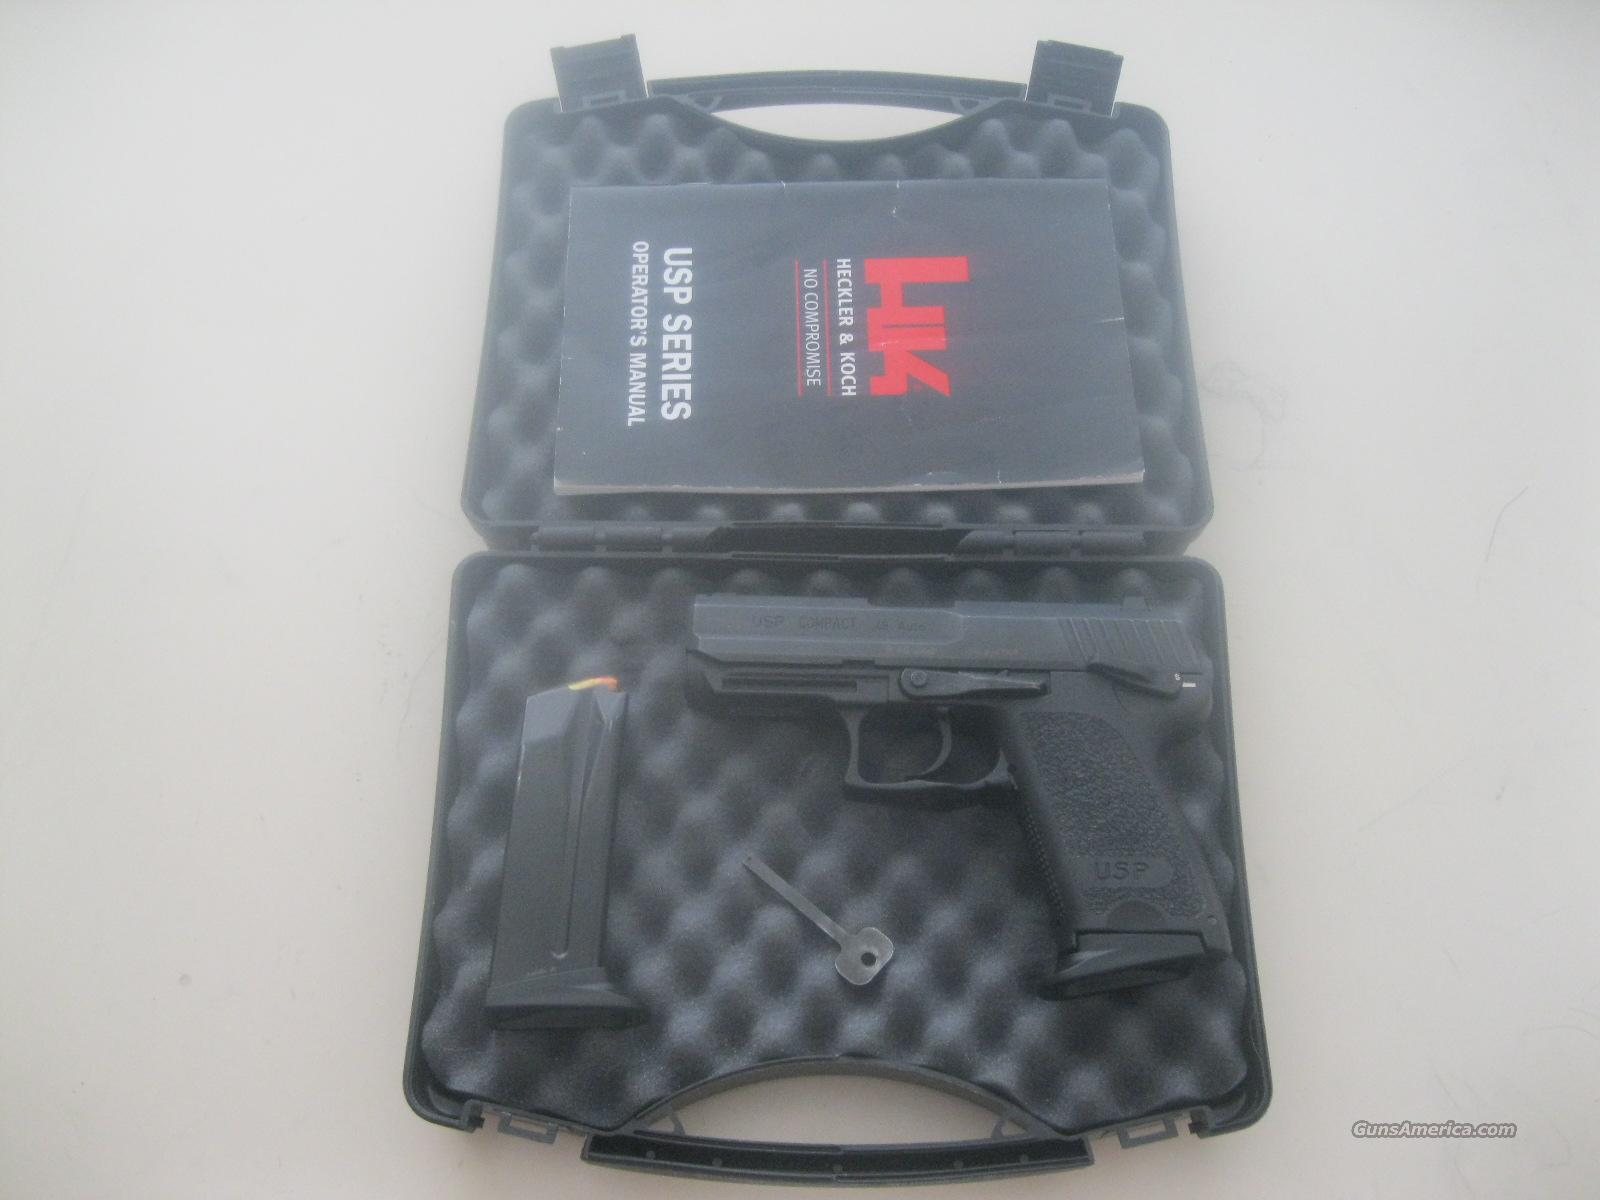 HK Compact USP .45 ACP with night sights, hard case, two 8r mags & manual  Guns > Pistols > Heckler & Koch Pistols > Polymer Frame